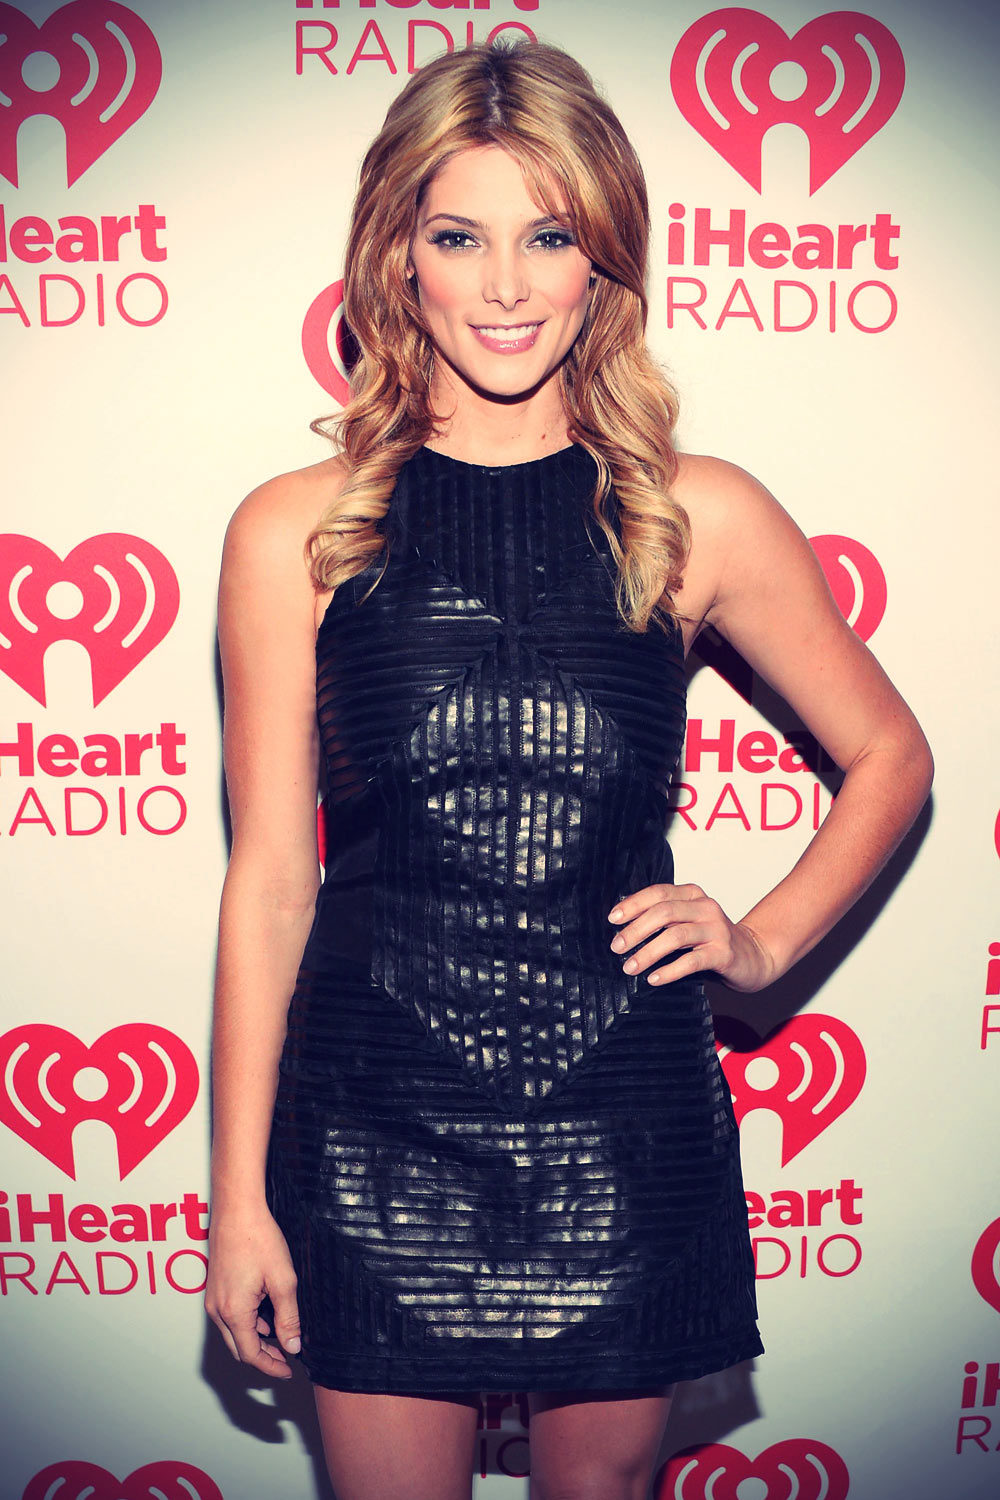 Ashley Greene attends iHeartRadio Music Festival